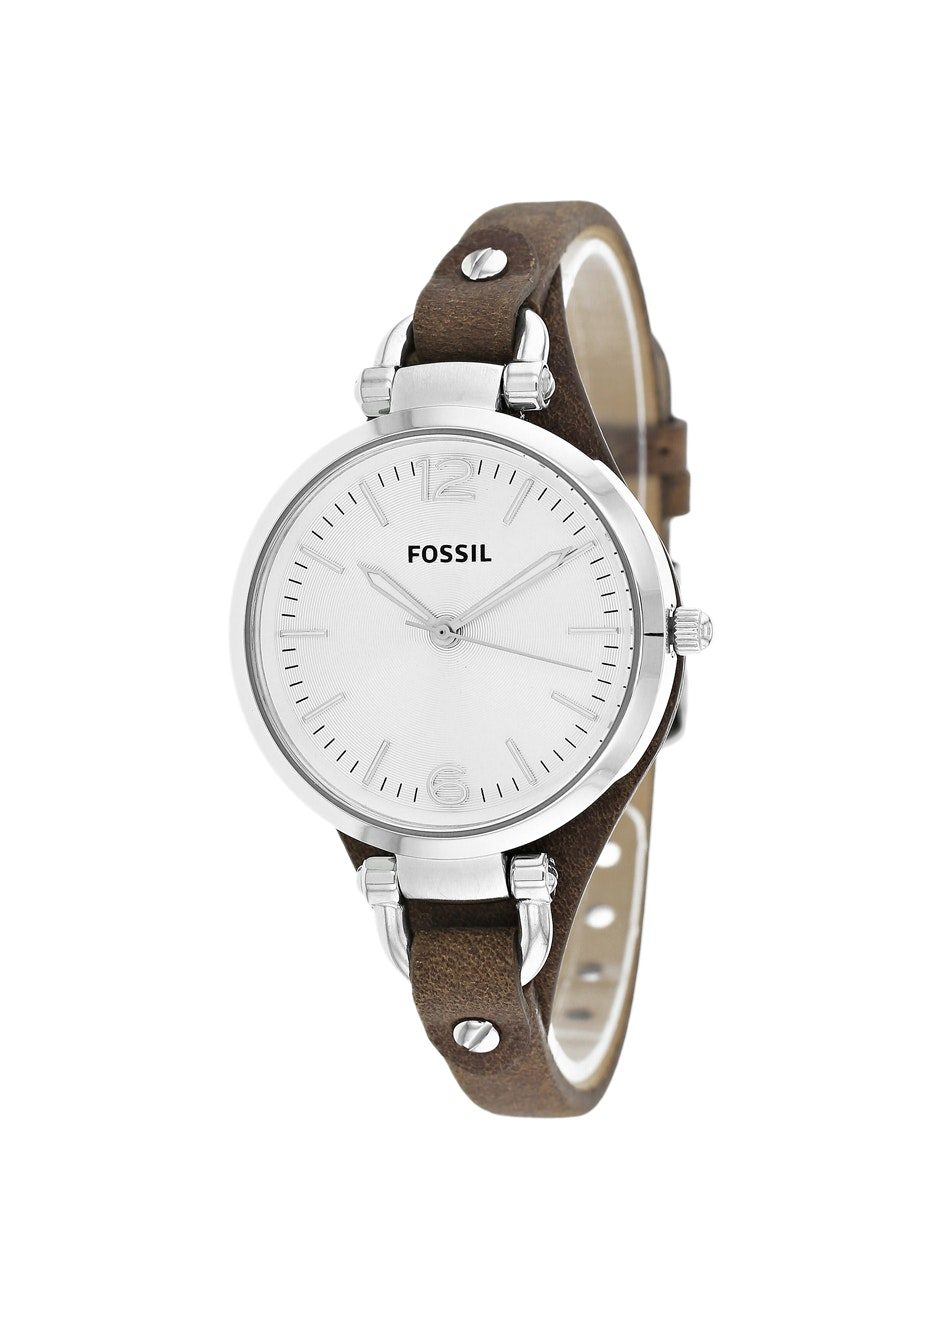 Fossil Women's Georgia - Silver/Chocolate Brown